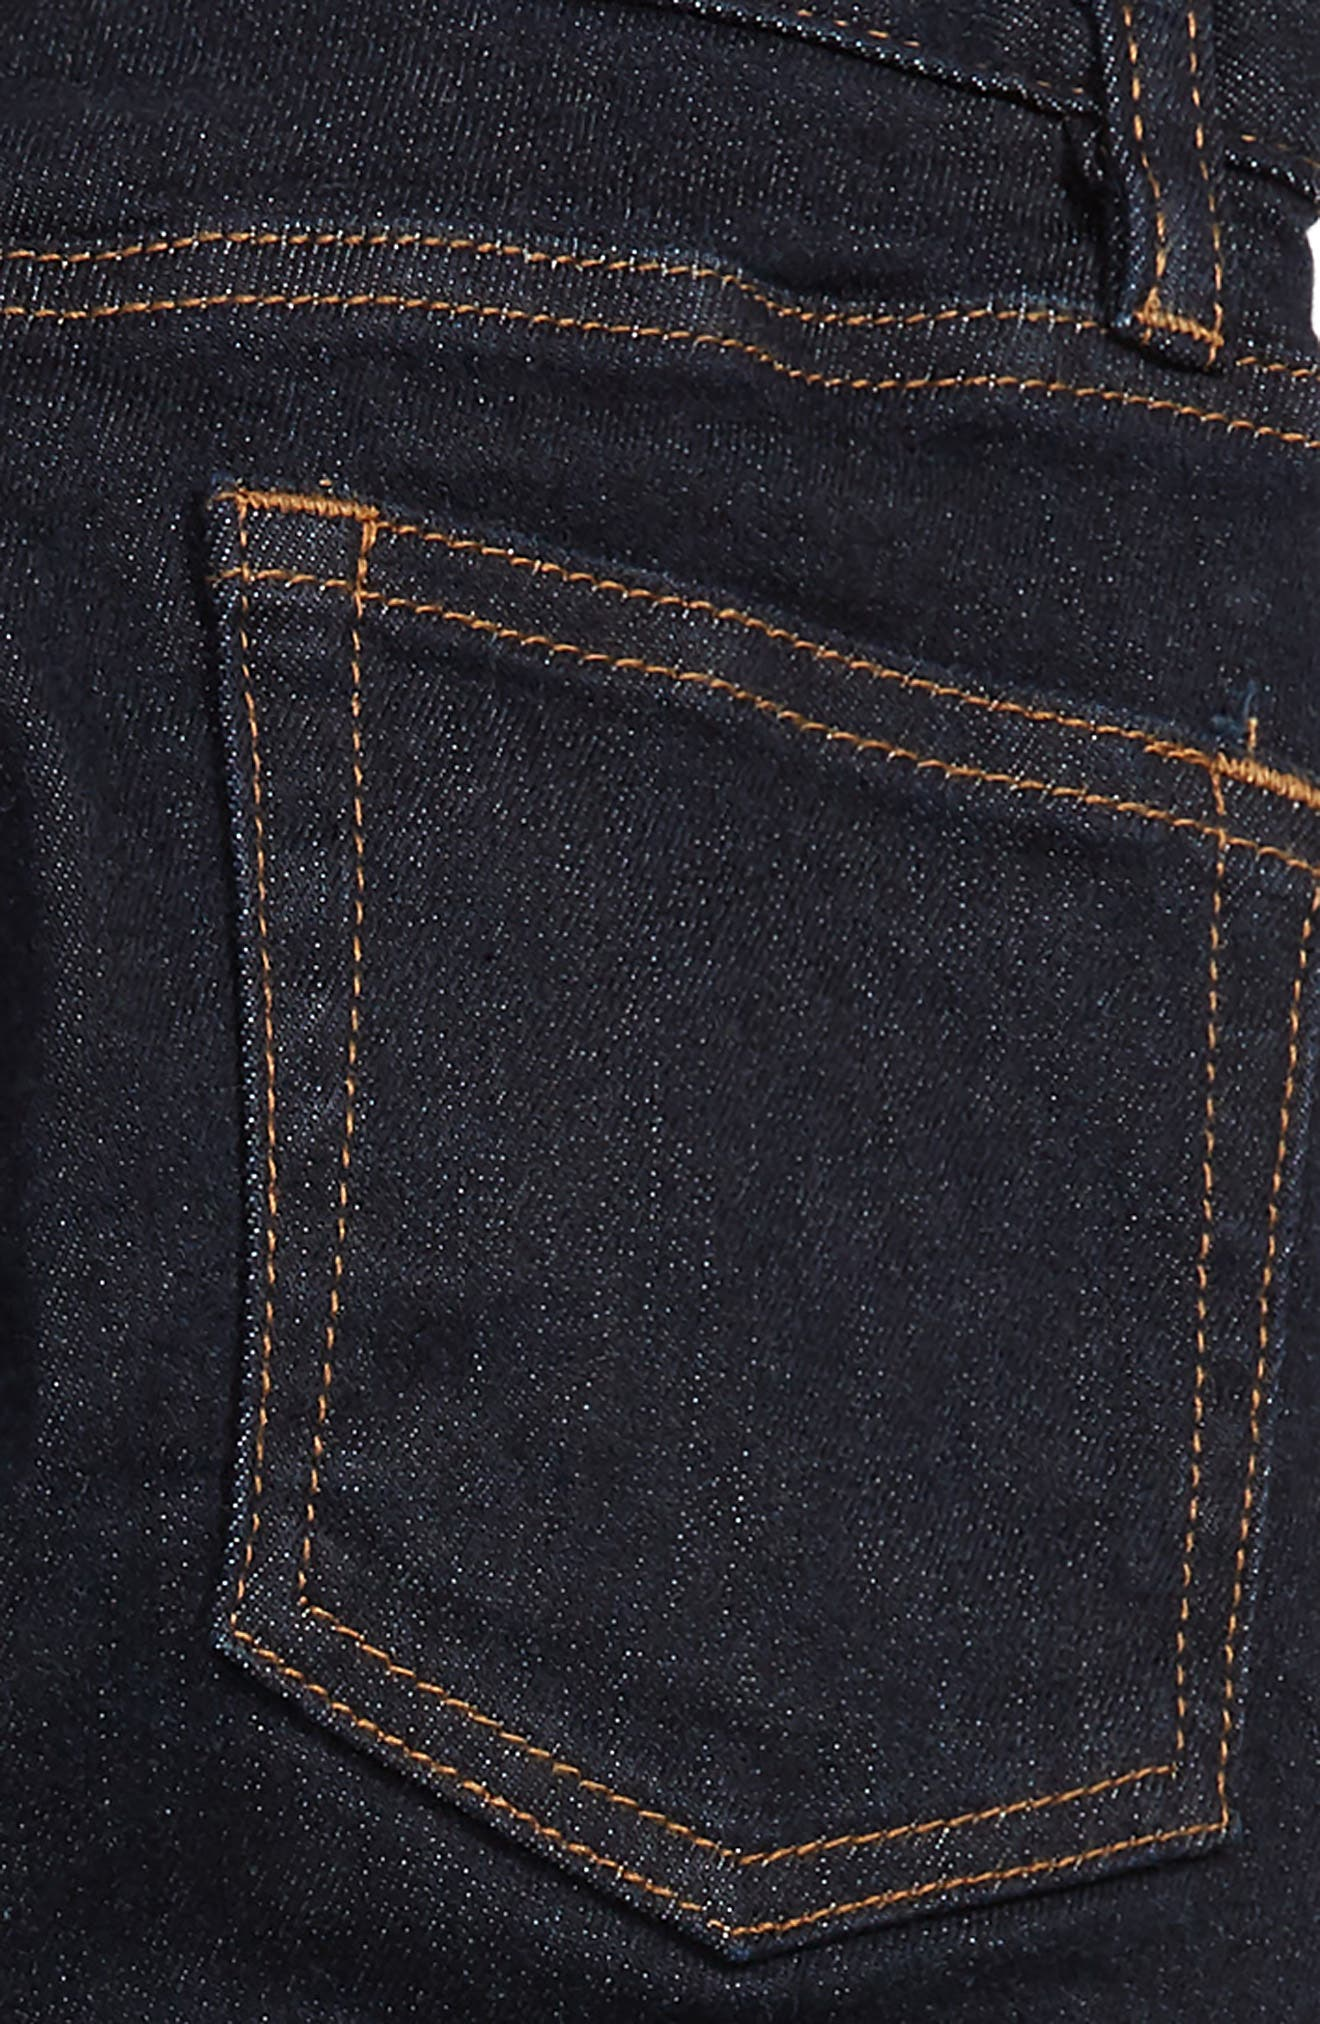 Runaround Slim Fit Lined Jeans,                             Alternate thumbnail 3, color,                             SKINNY RINSE